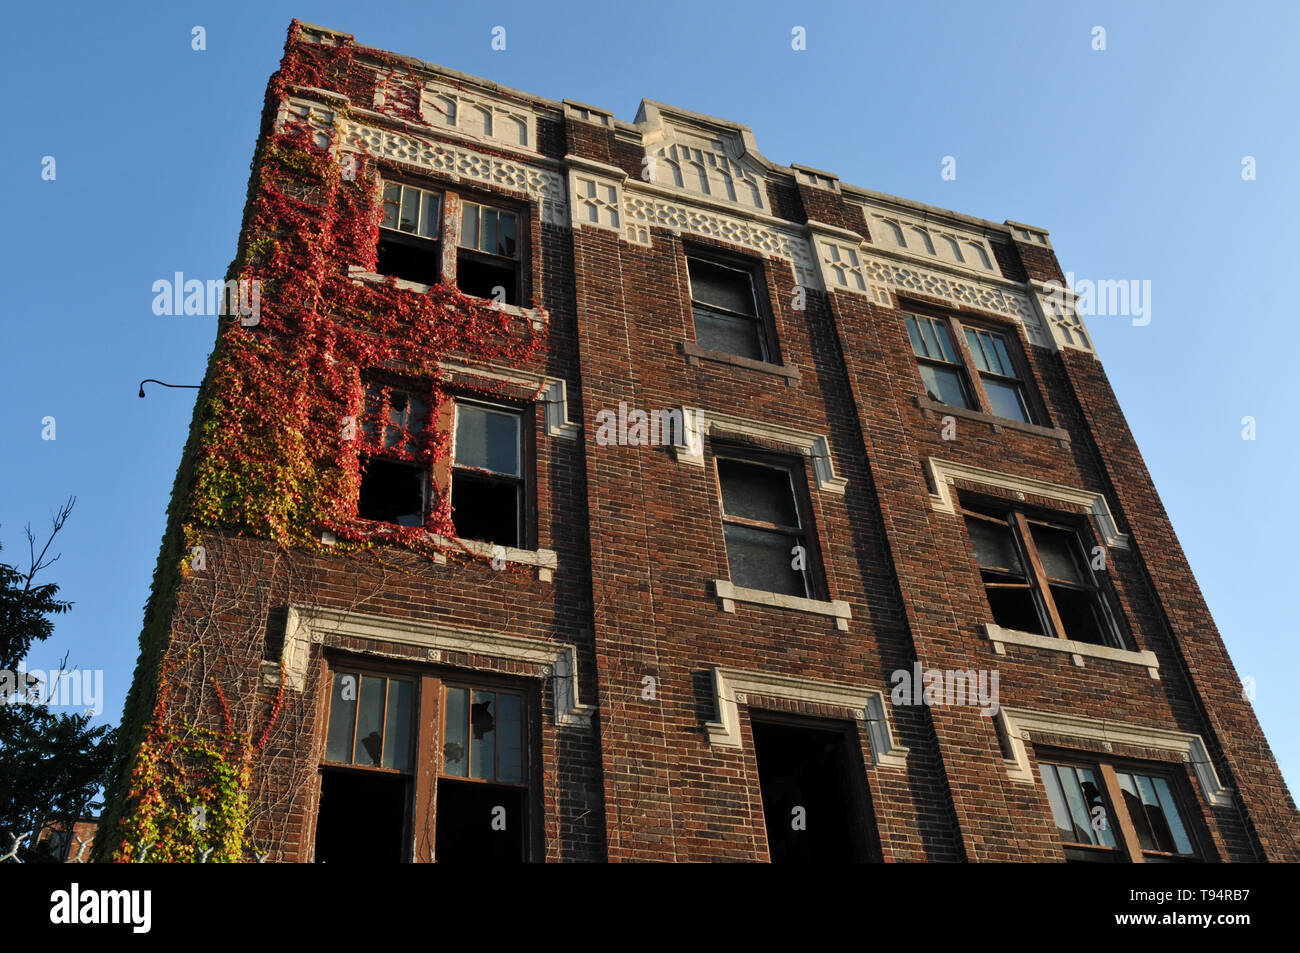 An abandoned, vacant apartment building, with many of its windows broken, is pictured in Detroit, Michigan. - Stock Image